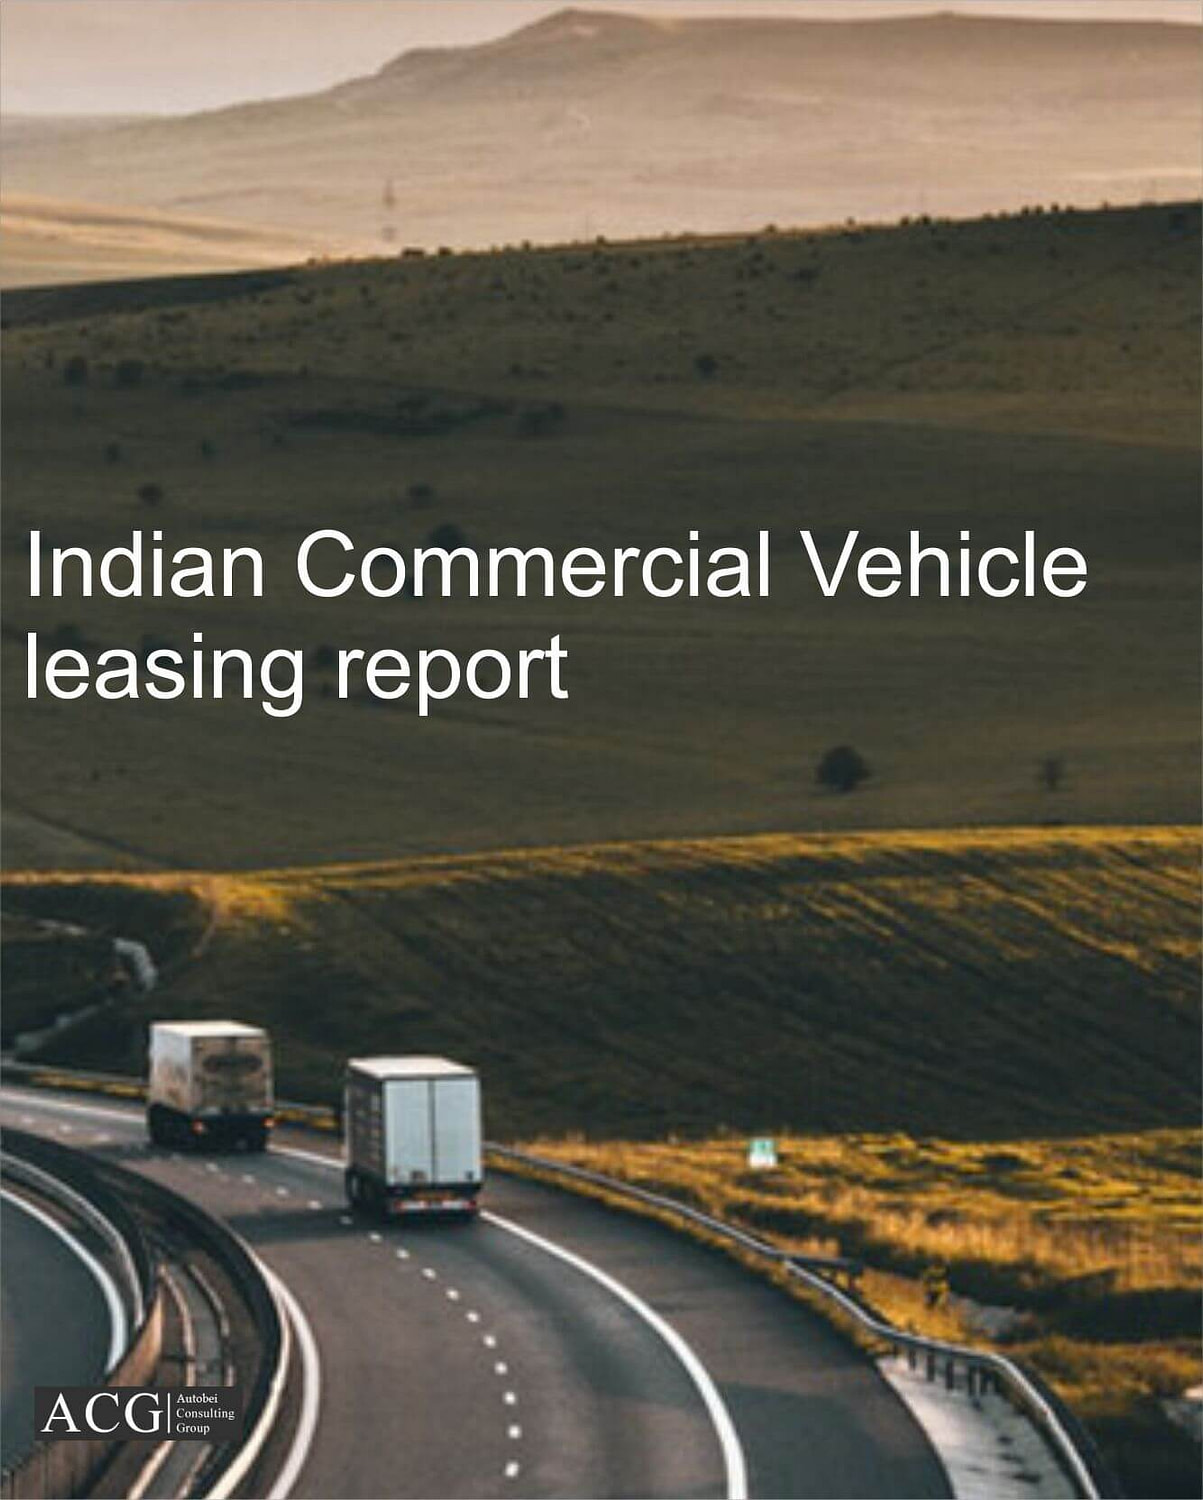 Indian Commercial Vehicle leasing report